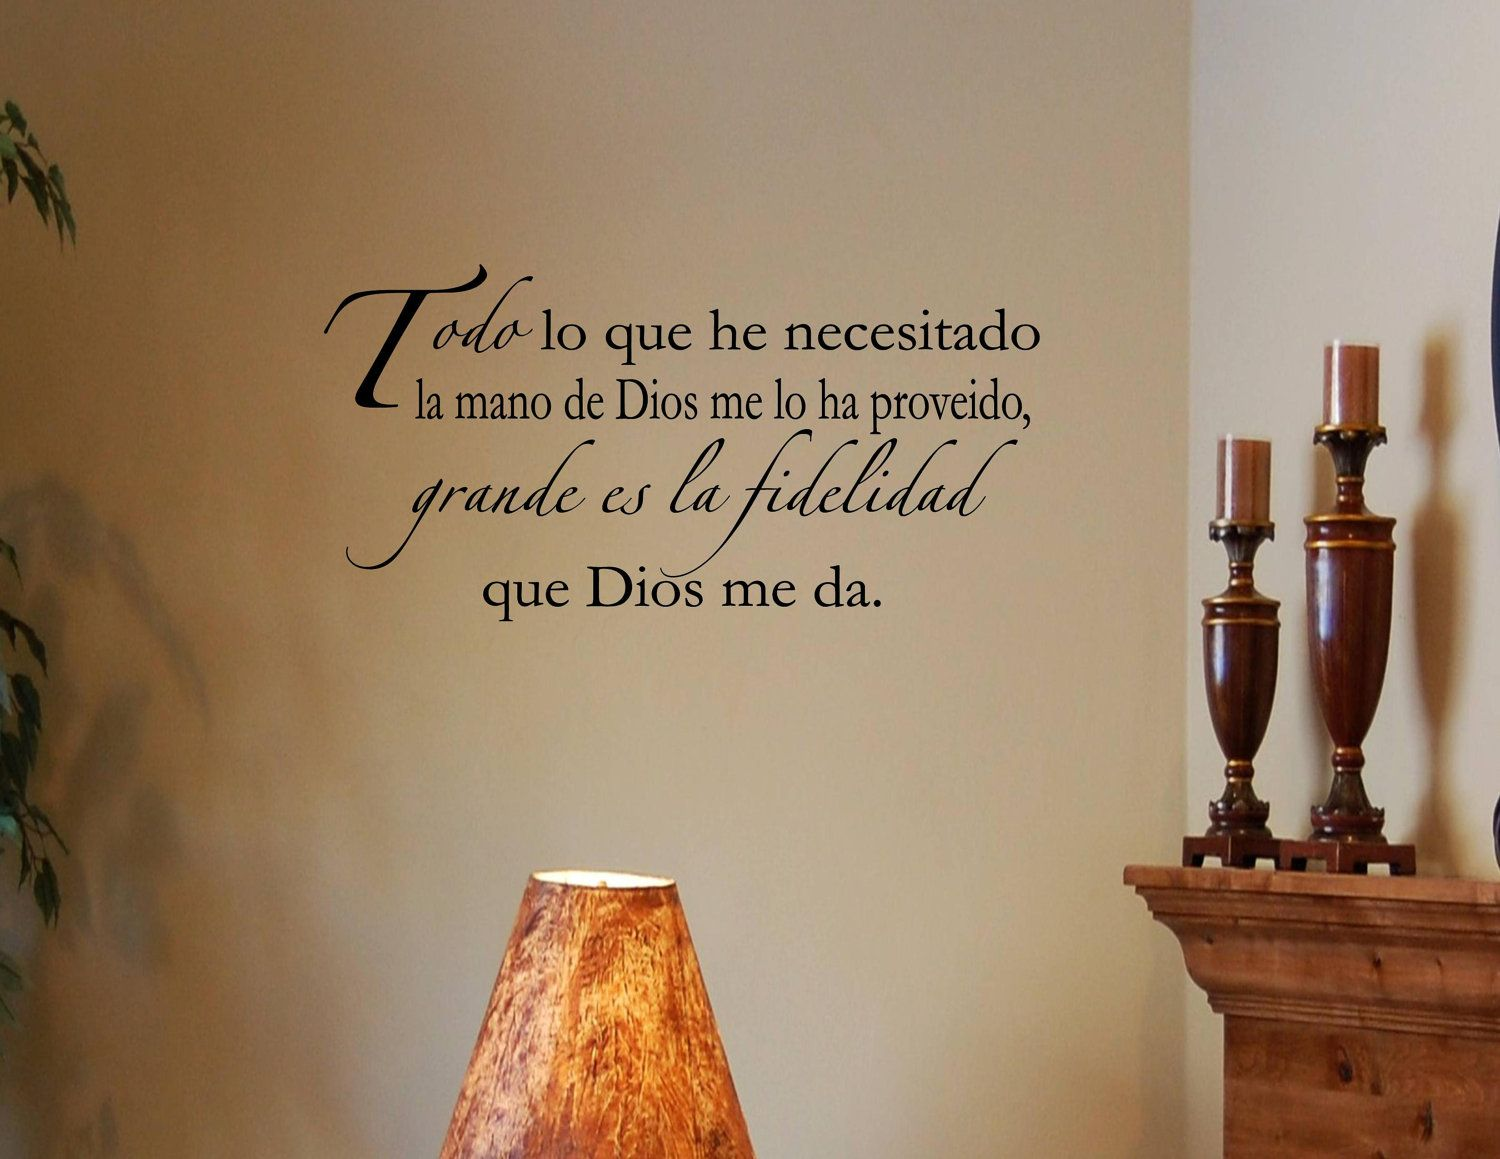 Spanish Vinyl Wall Quotes Espanol Todo Lo Que He Necesitado La - Custom vinyl wall decals sayings for family room